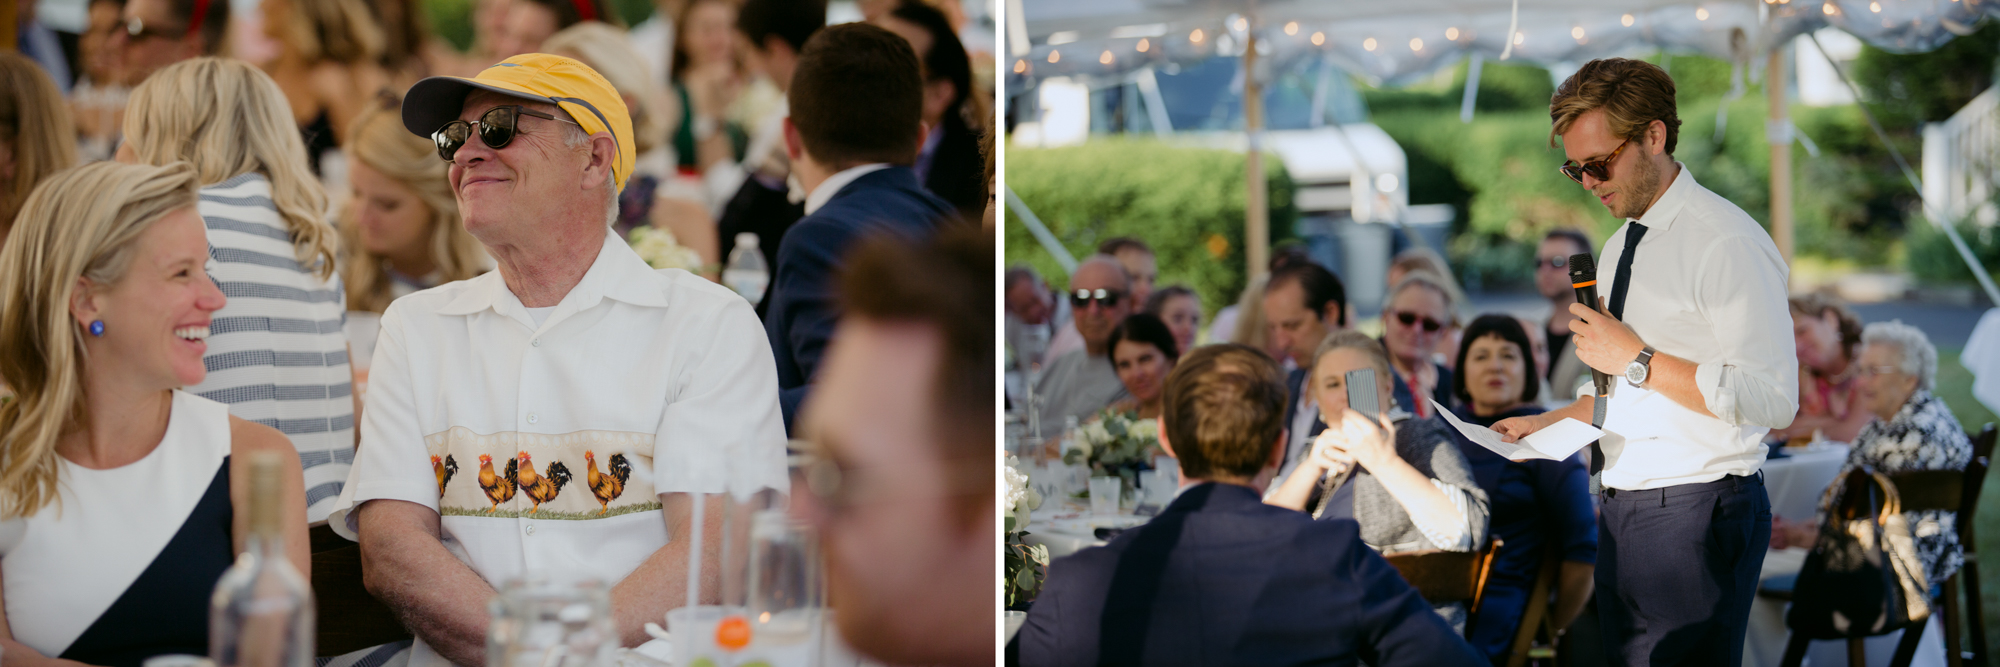 harpswell_maine_wedding_on_a_private_oceanfront_barn_leah_fisher_025.jpg